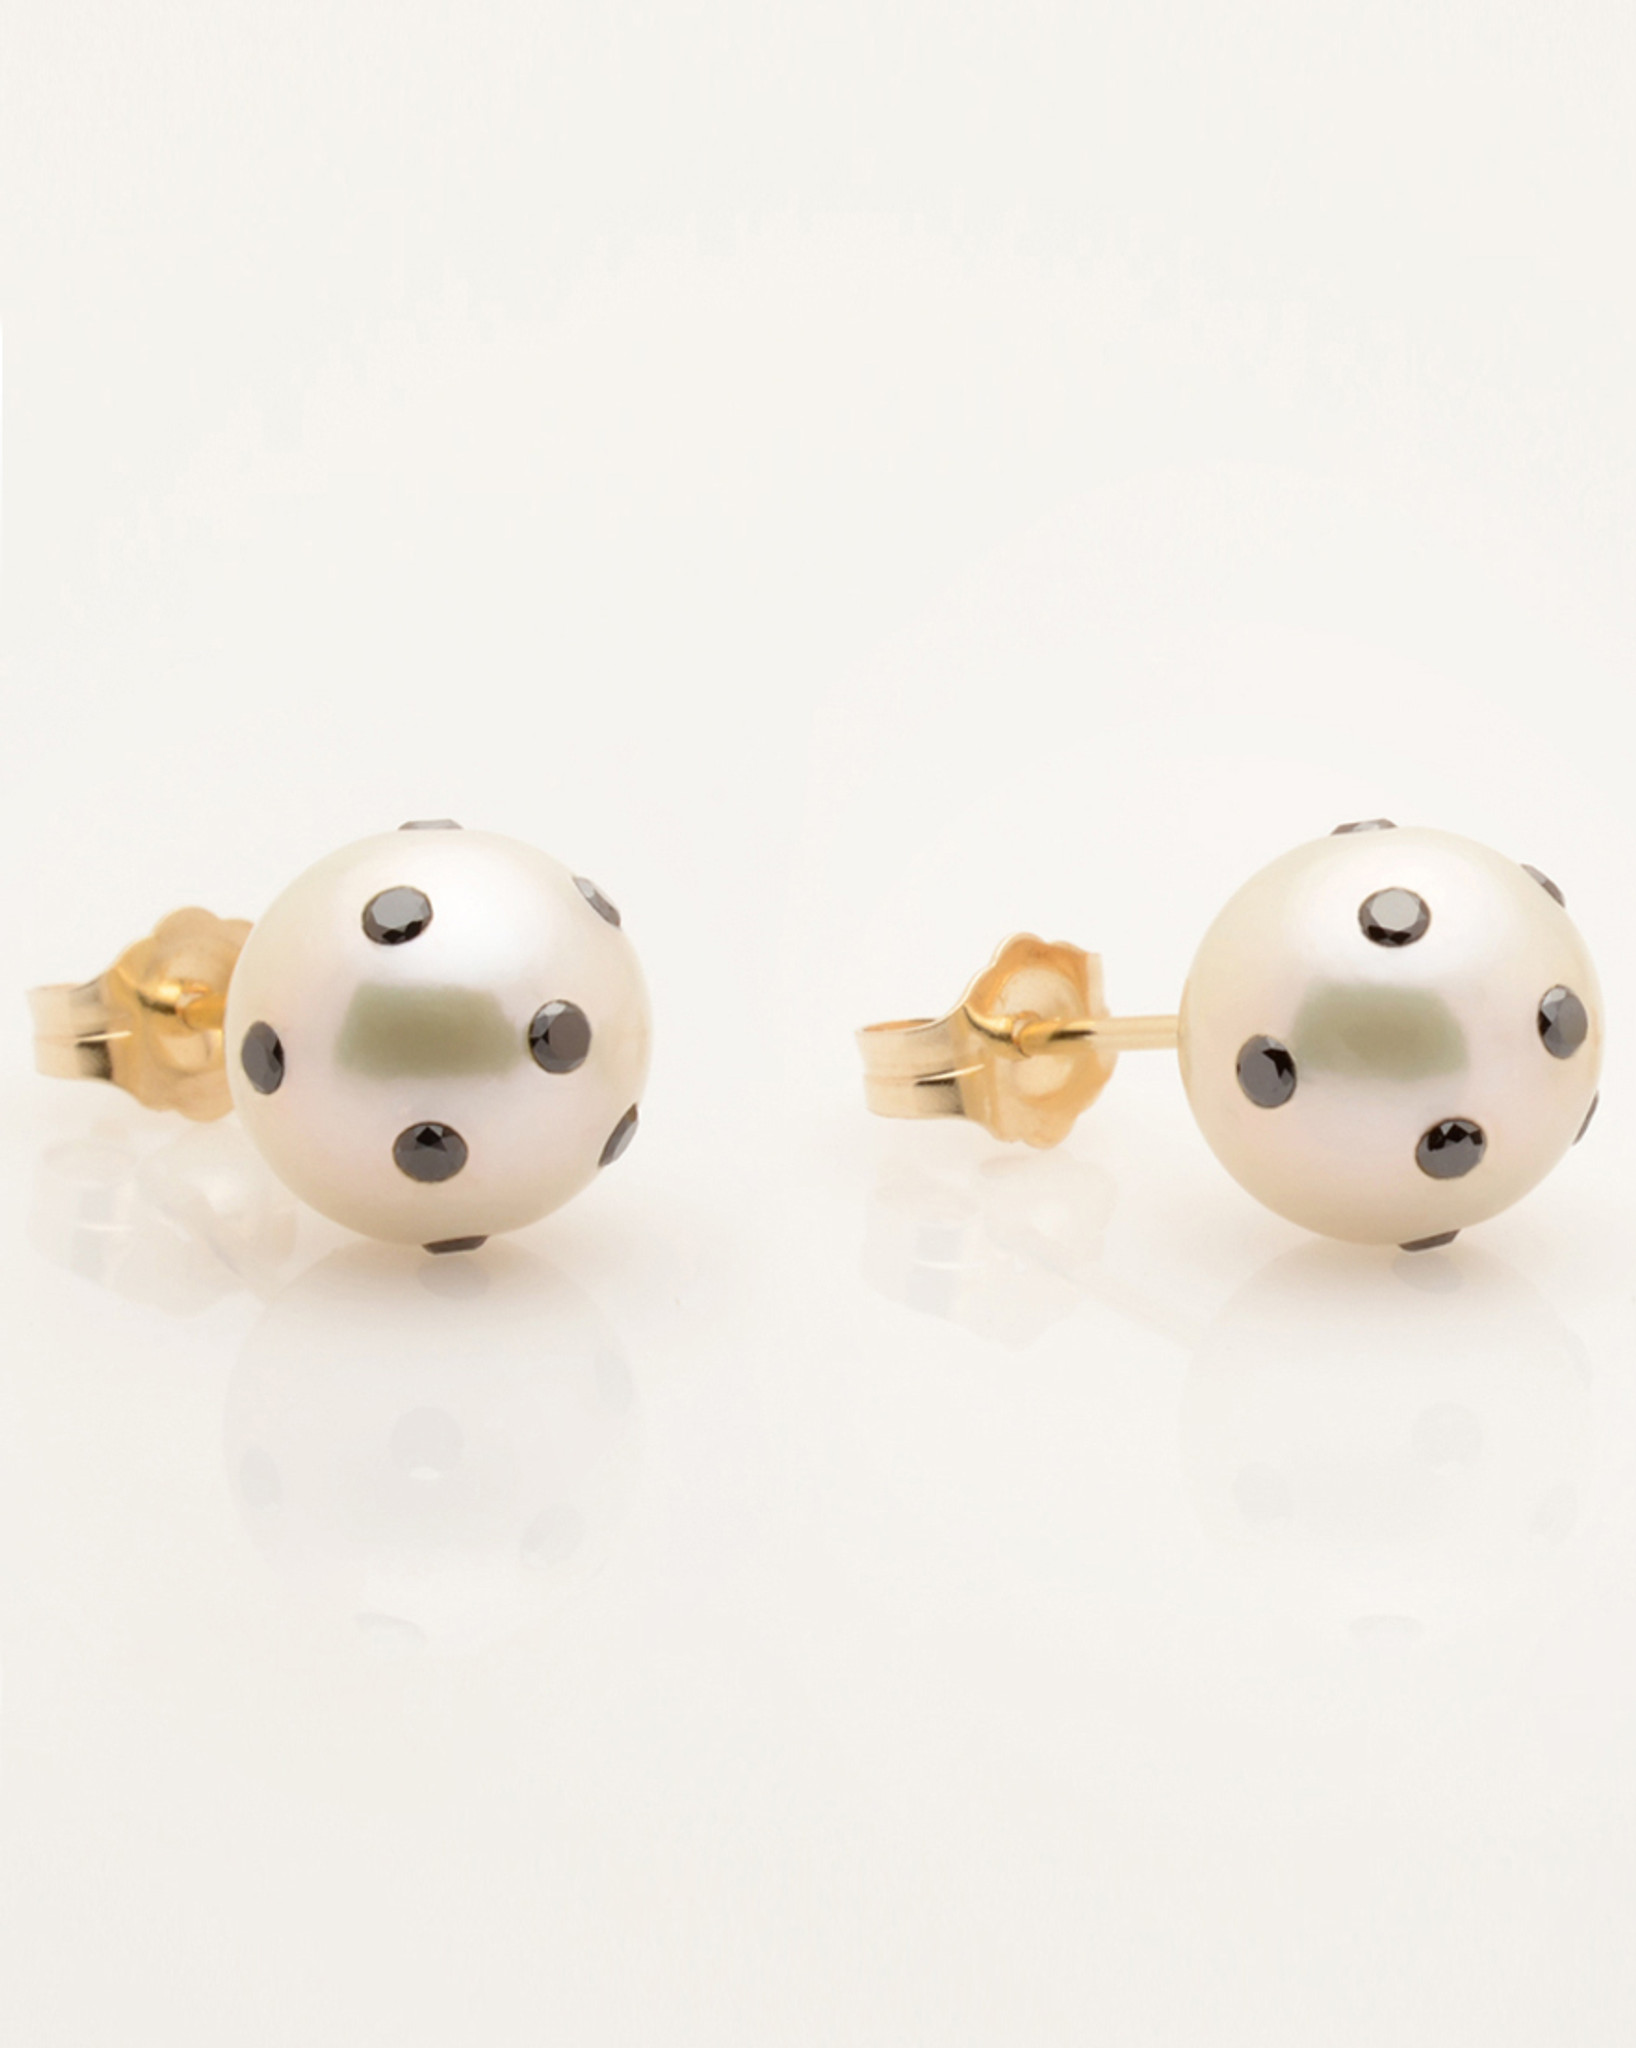 Cultured Freshwater Double White And Black Pearl Earrings With Ladybug  Diamond Pave And 14k Gold Posts By